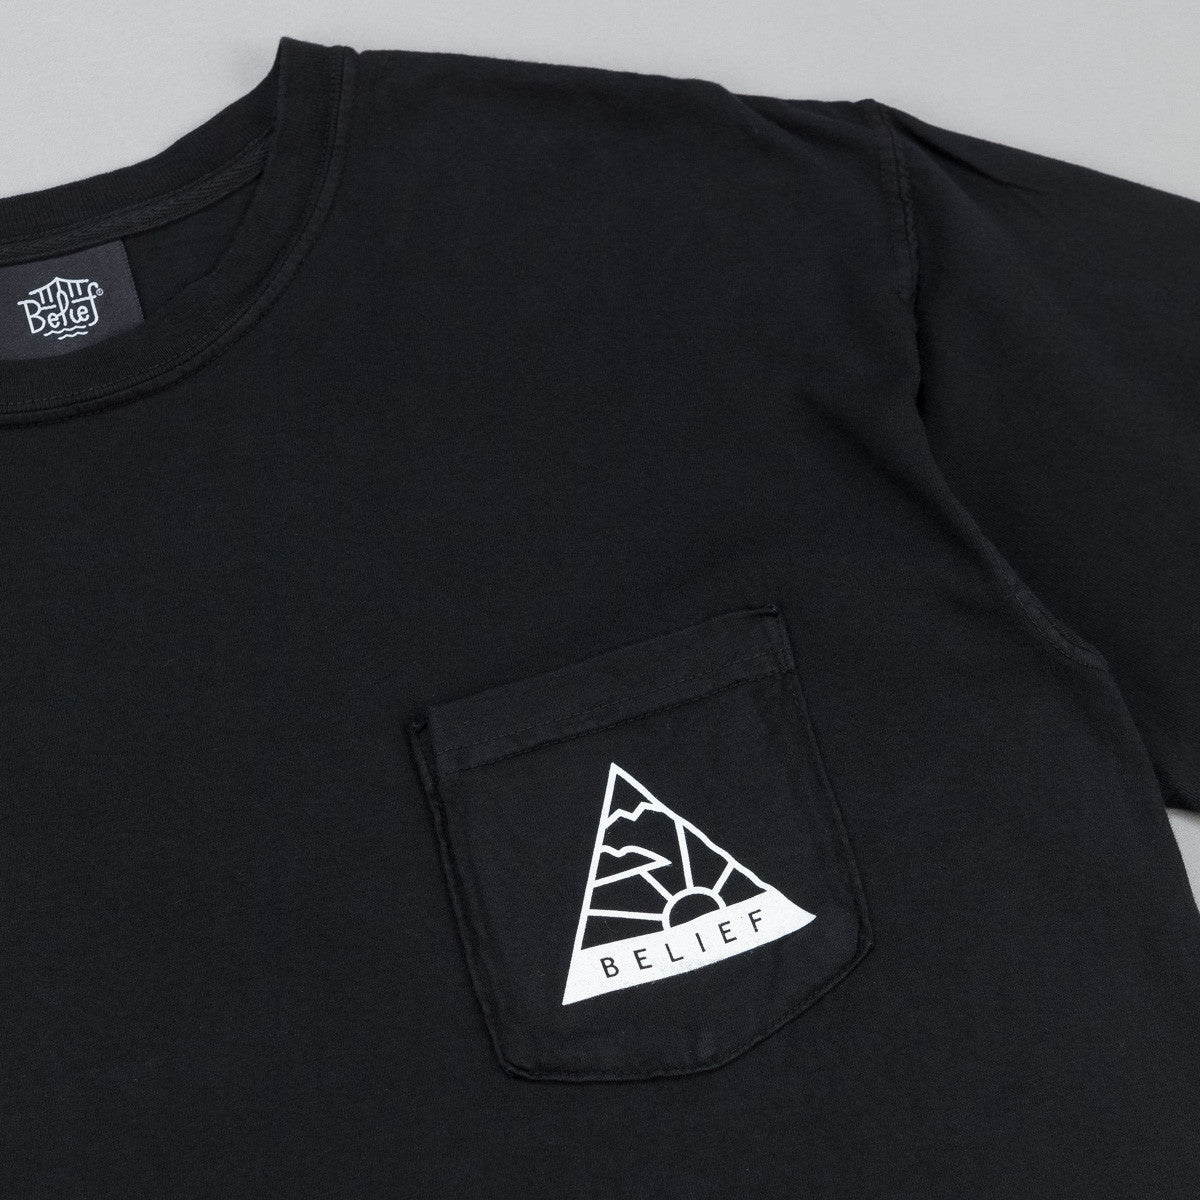 Belief Horizon Pocket T-Shirt - Black